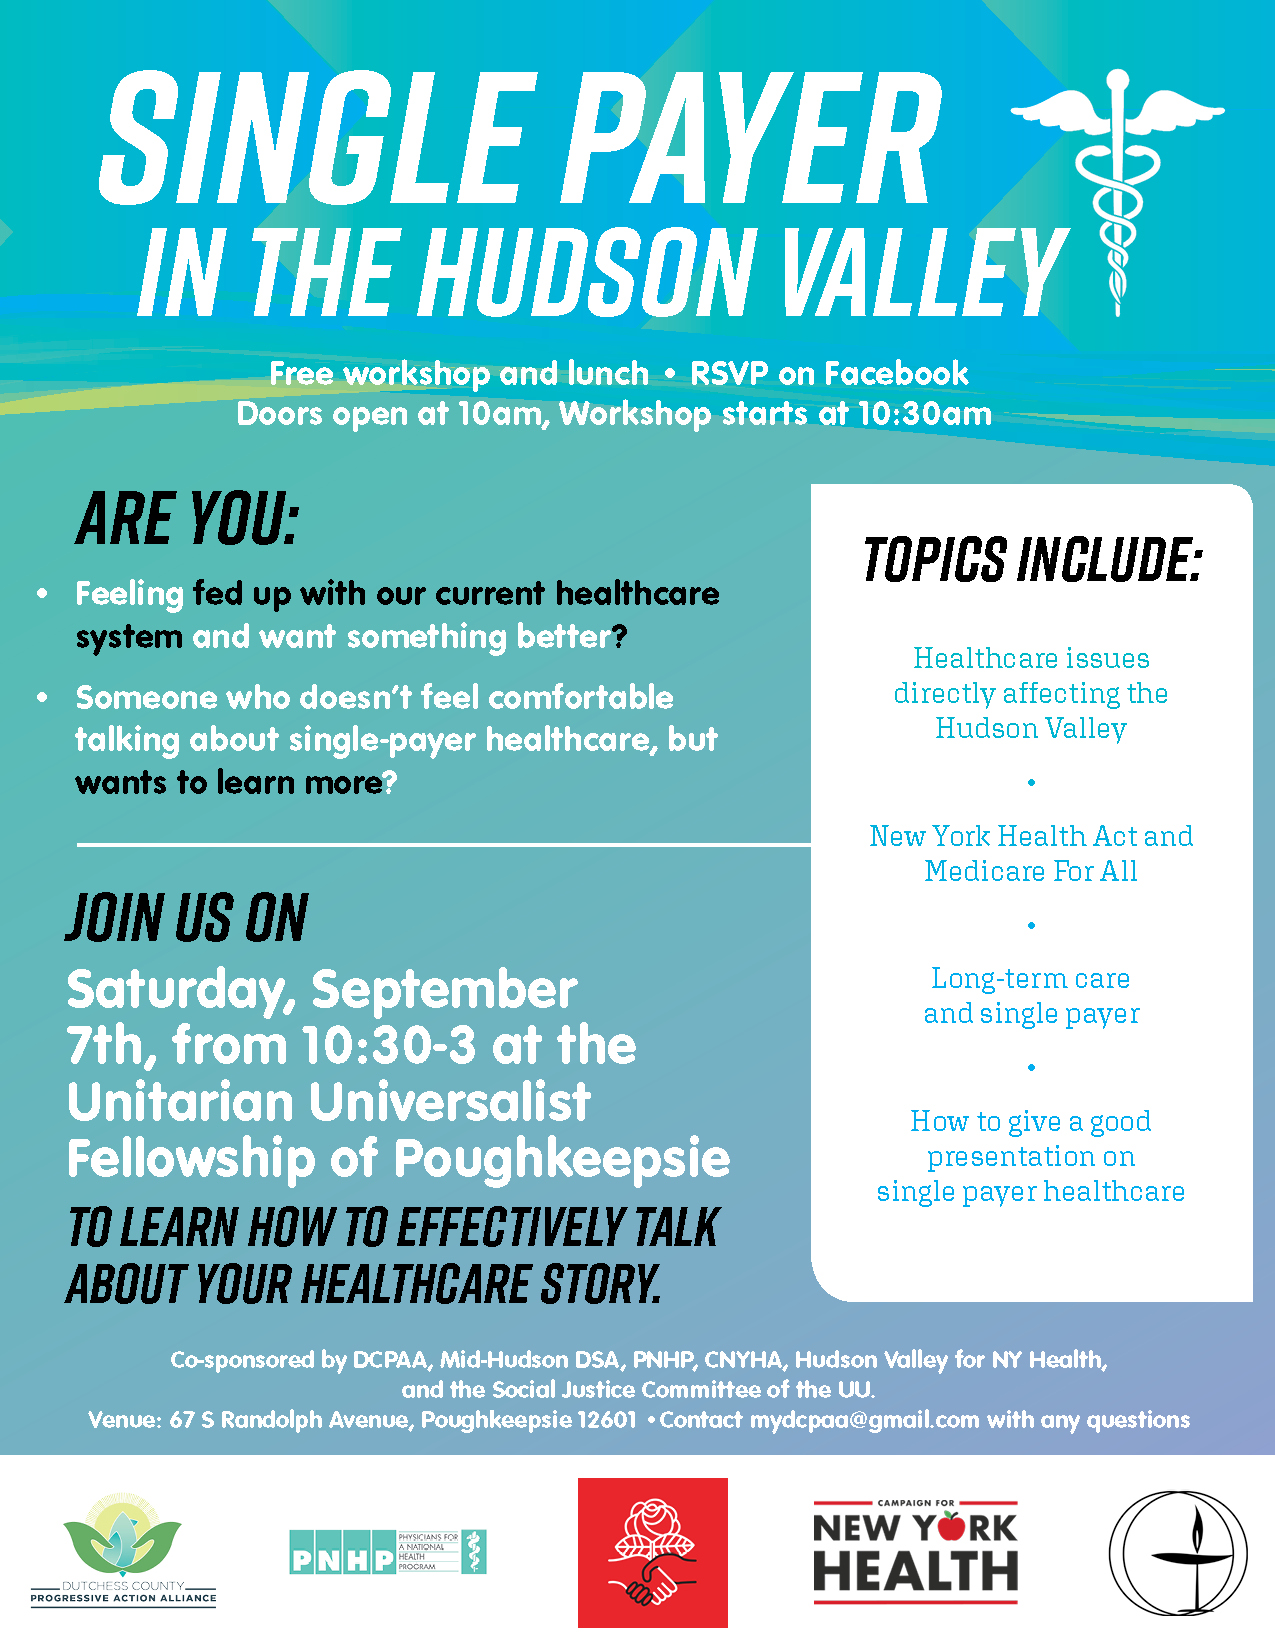 Single_payer_in_the_hudson_valley_flyer